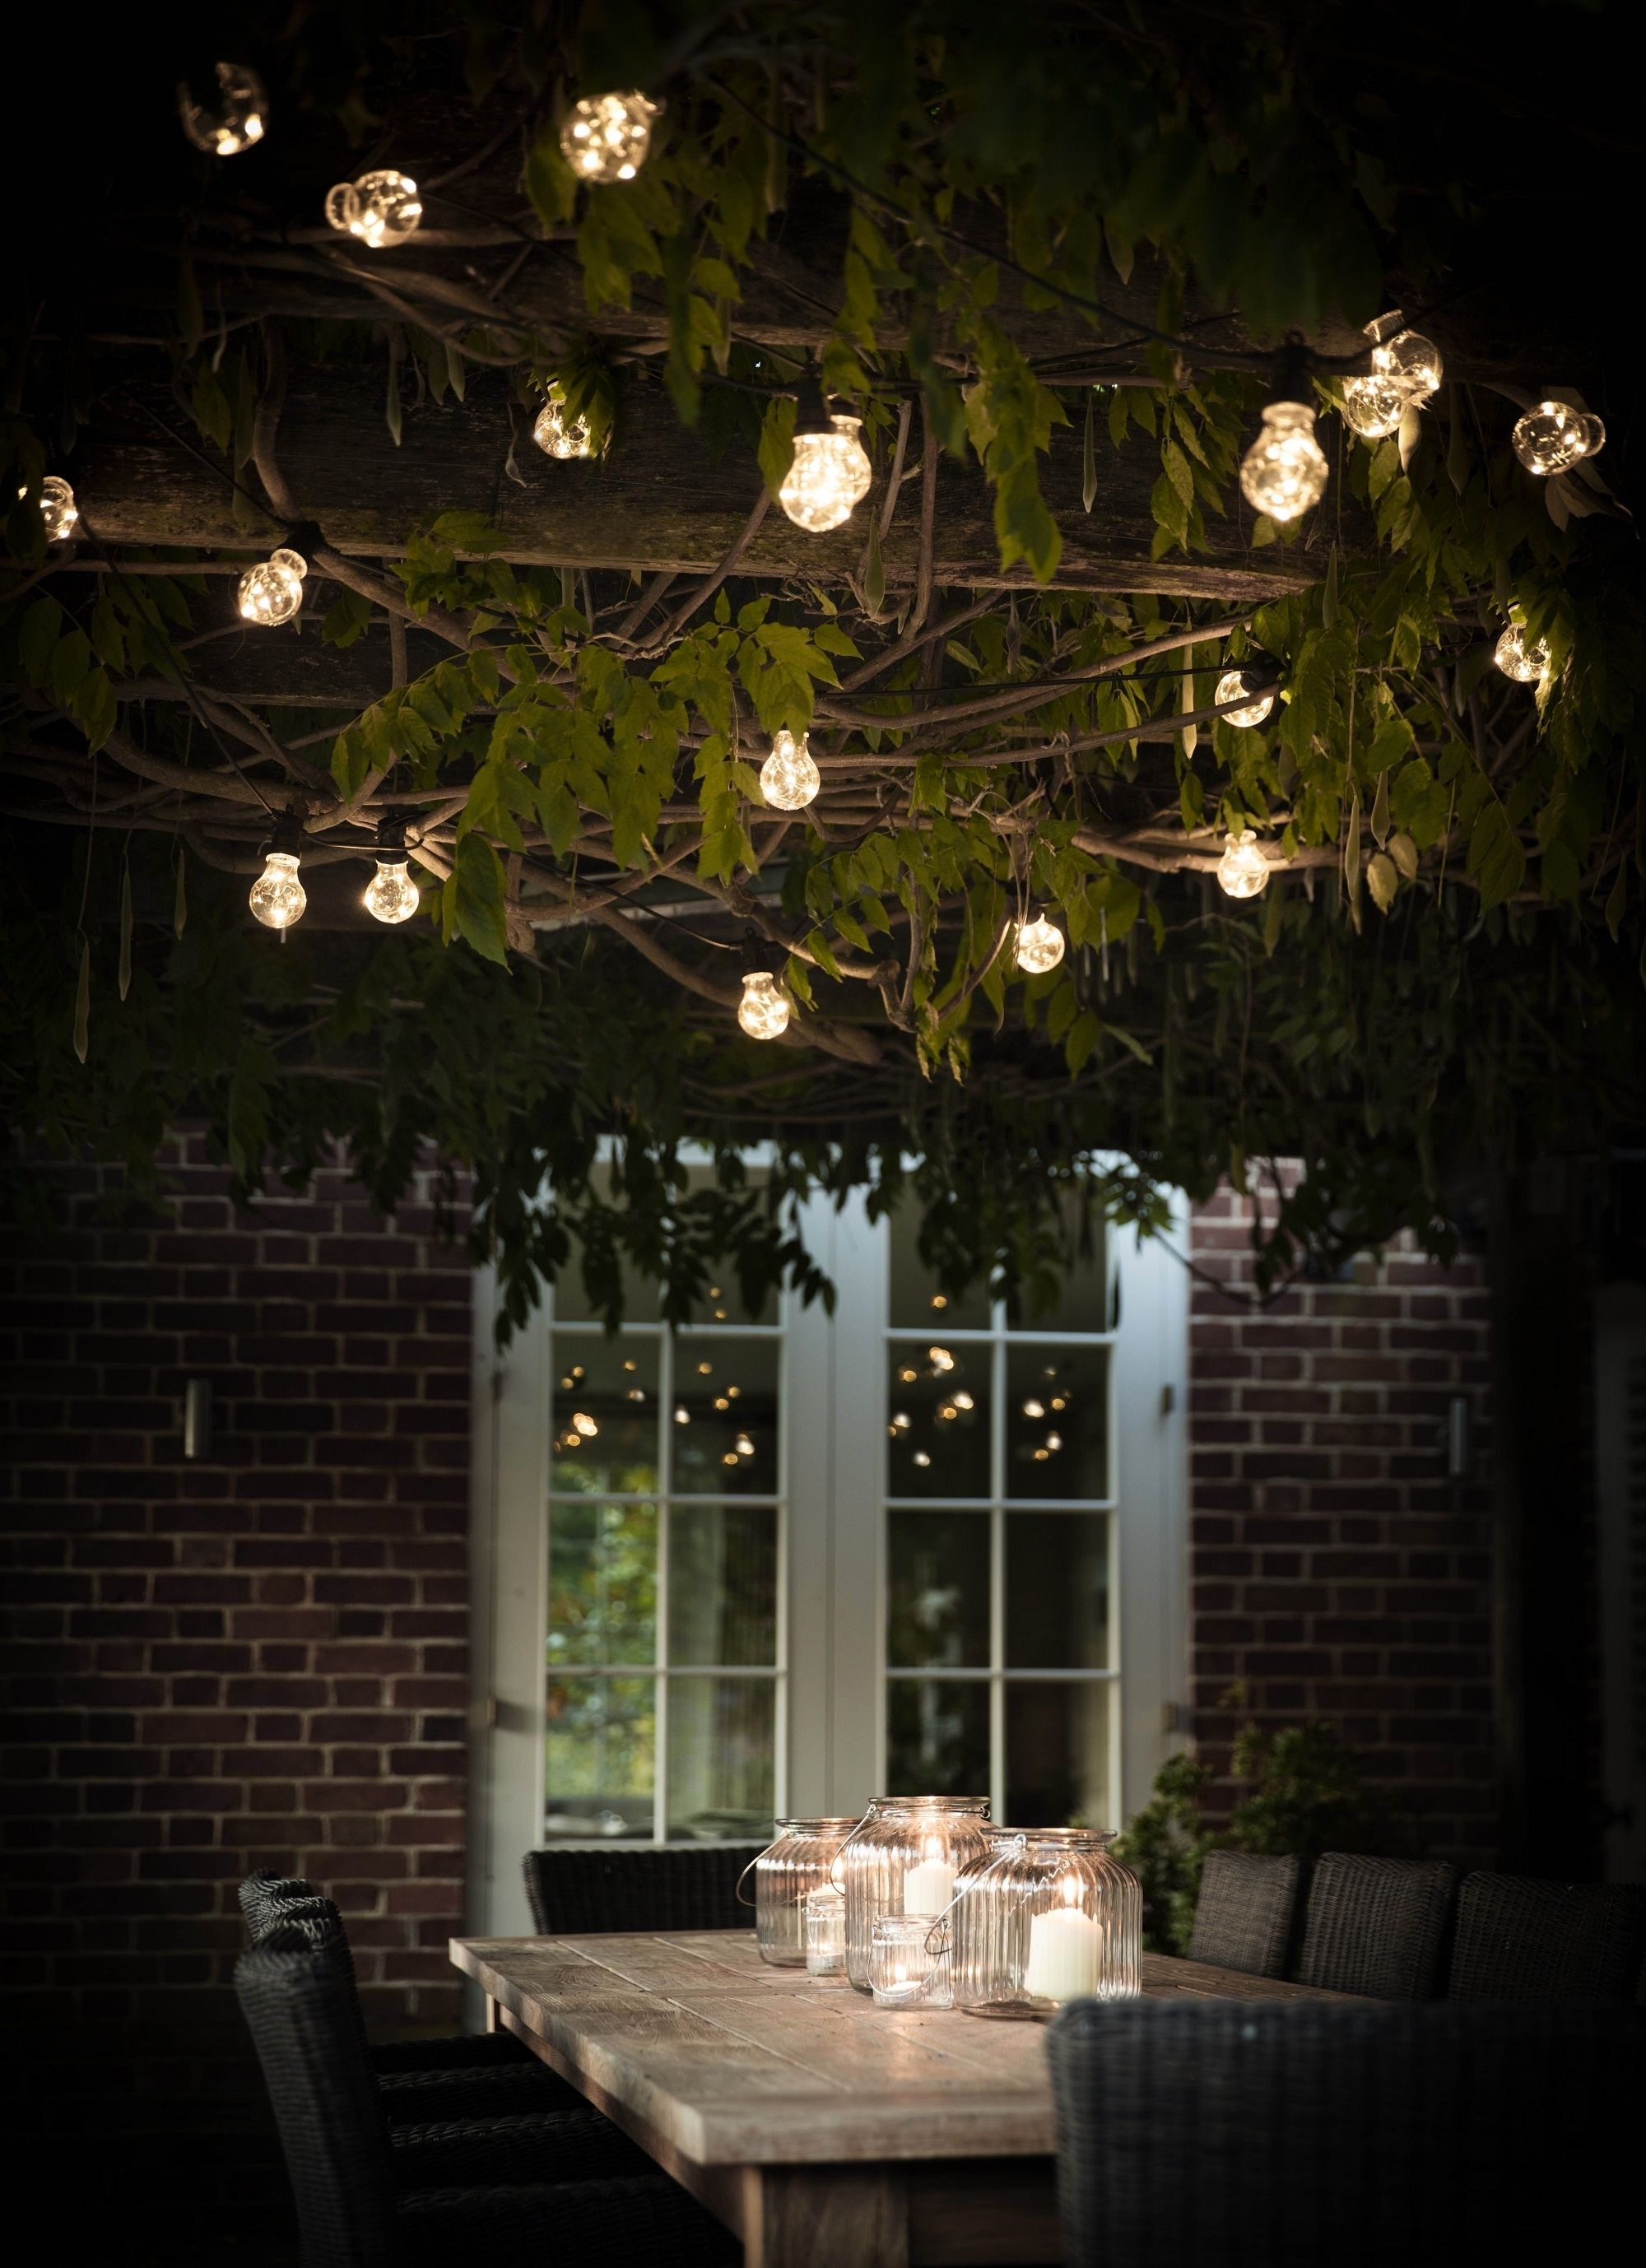 Outdoor Lanterns For Trees Within Well Liked 38 Innovative Outdoor Lighting Ideas For Your Garden (View 15 of 20)